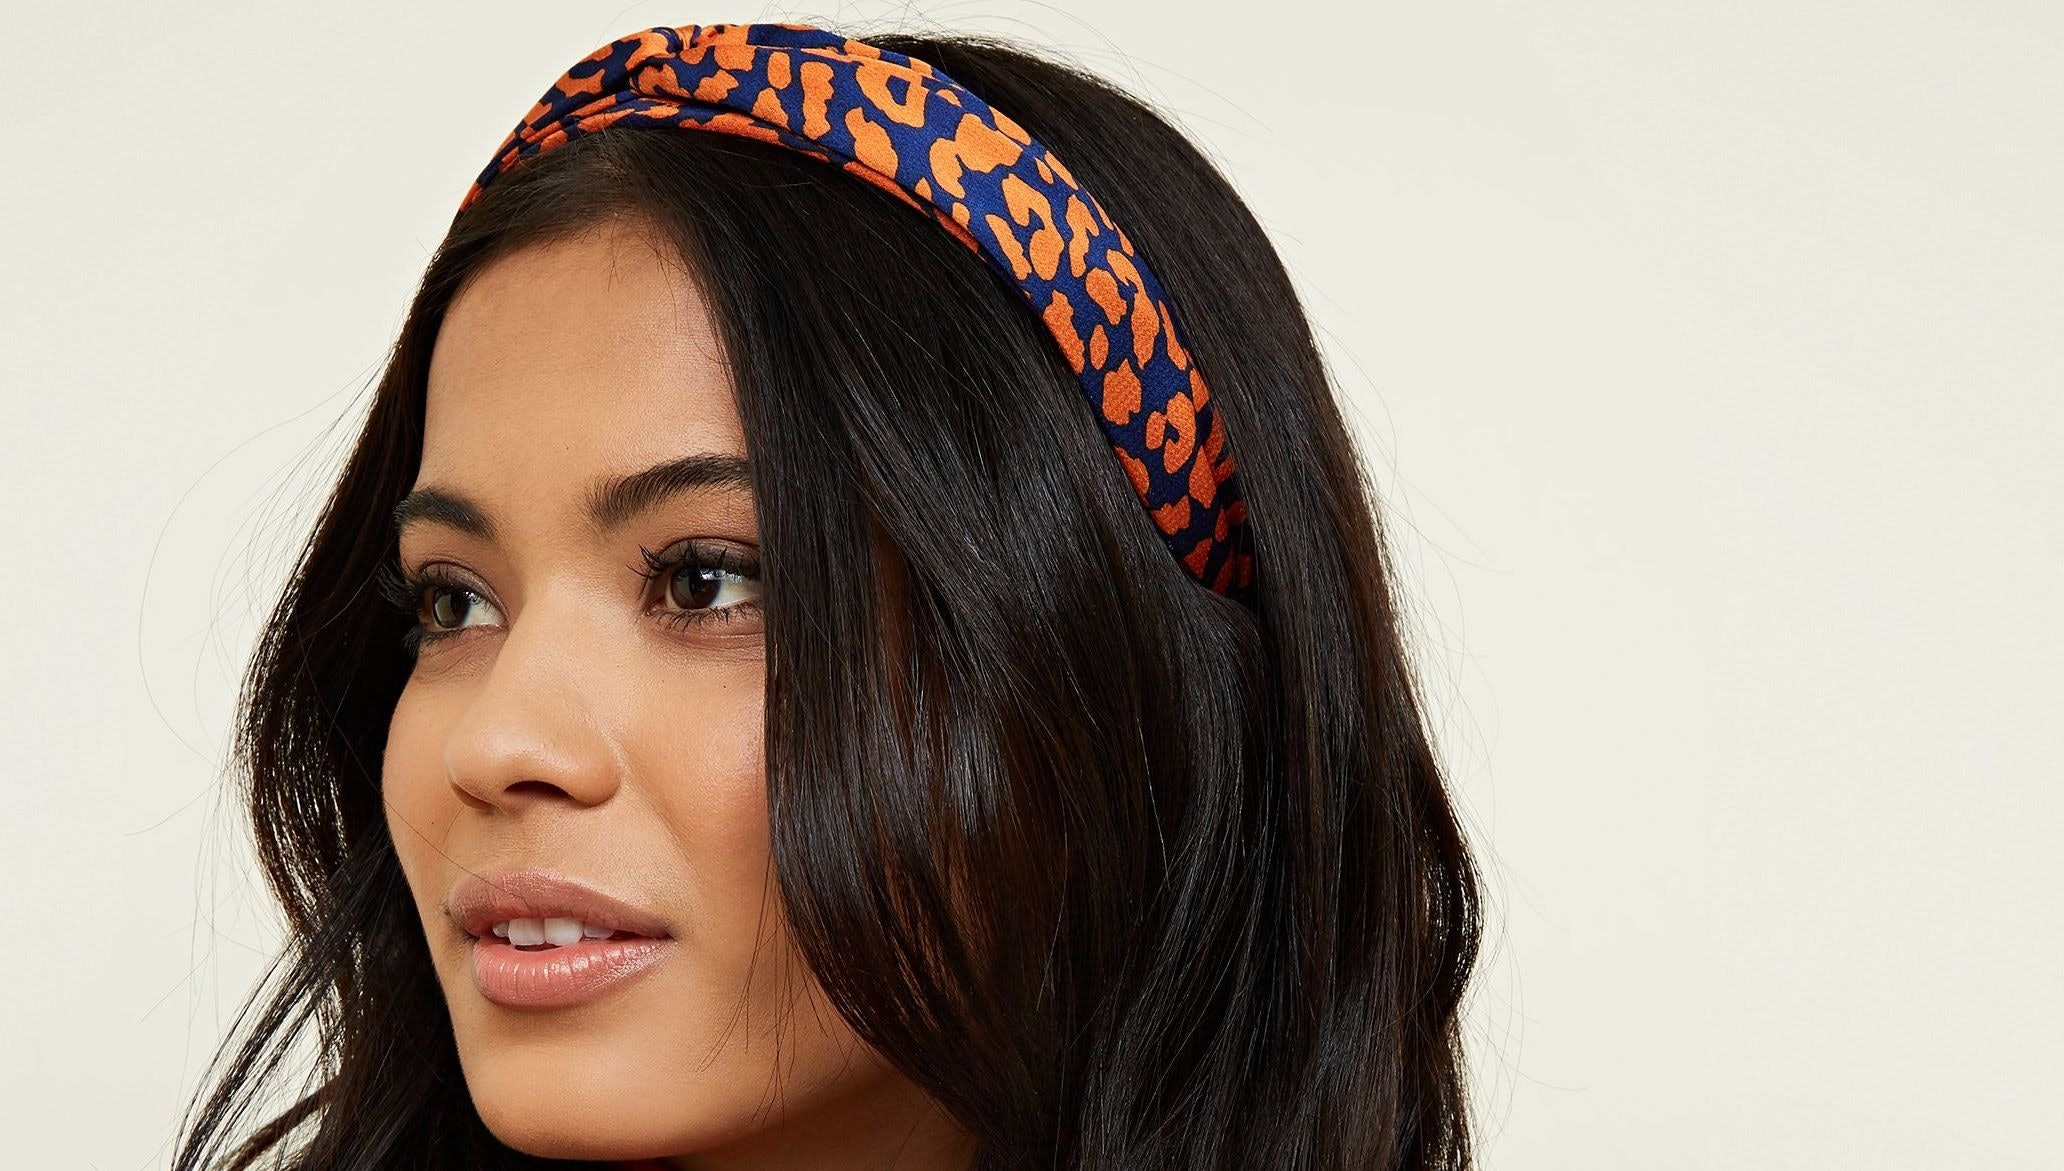 7 Knotted Headbands To Add Style To Any Outfit 7b8e95c2140